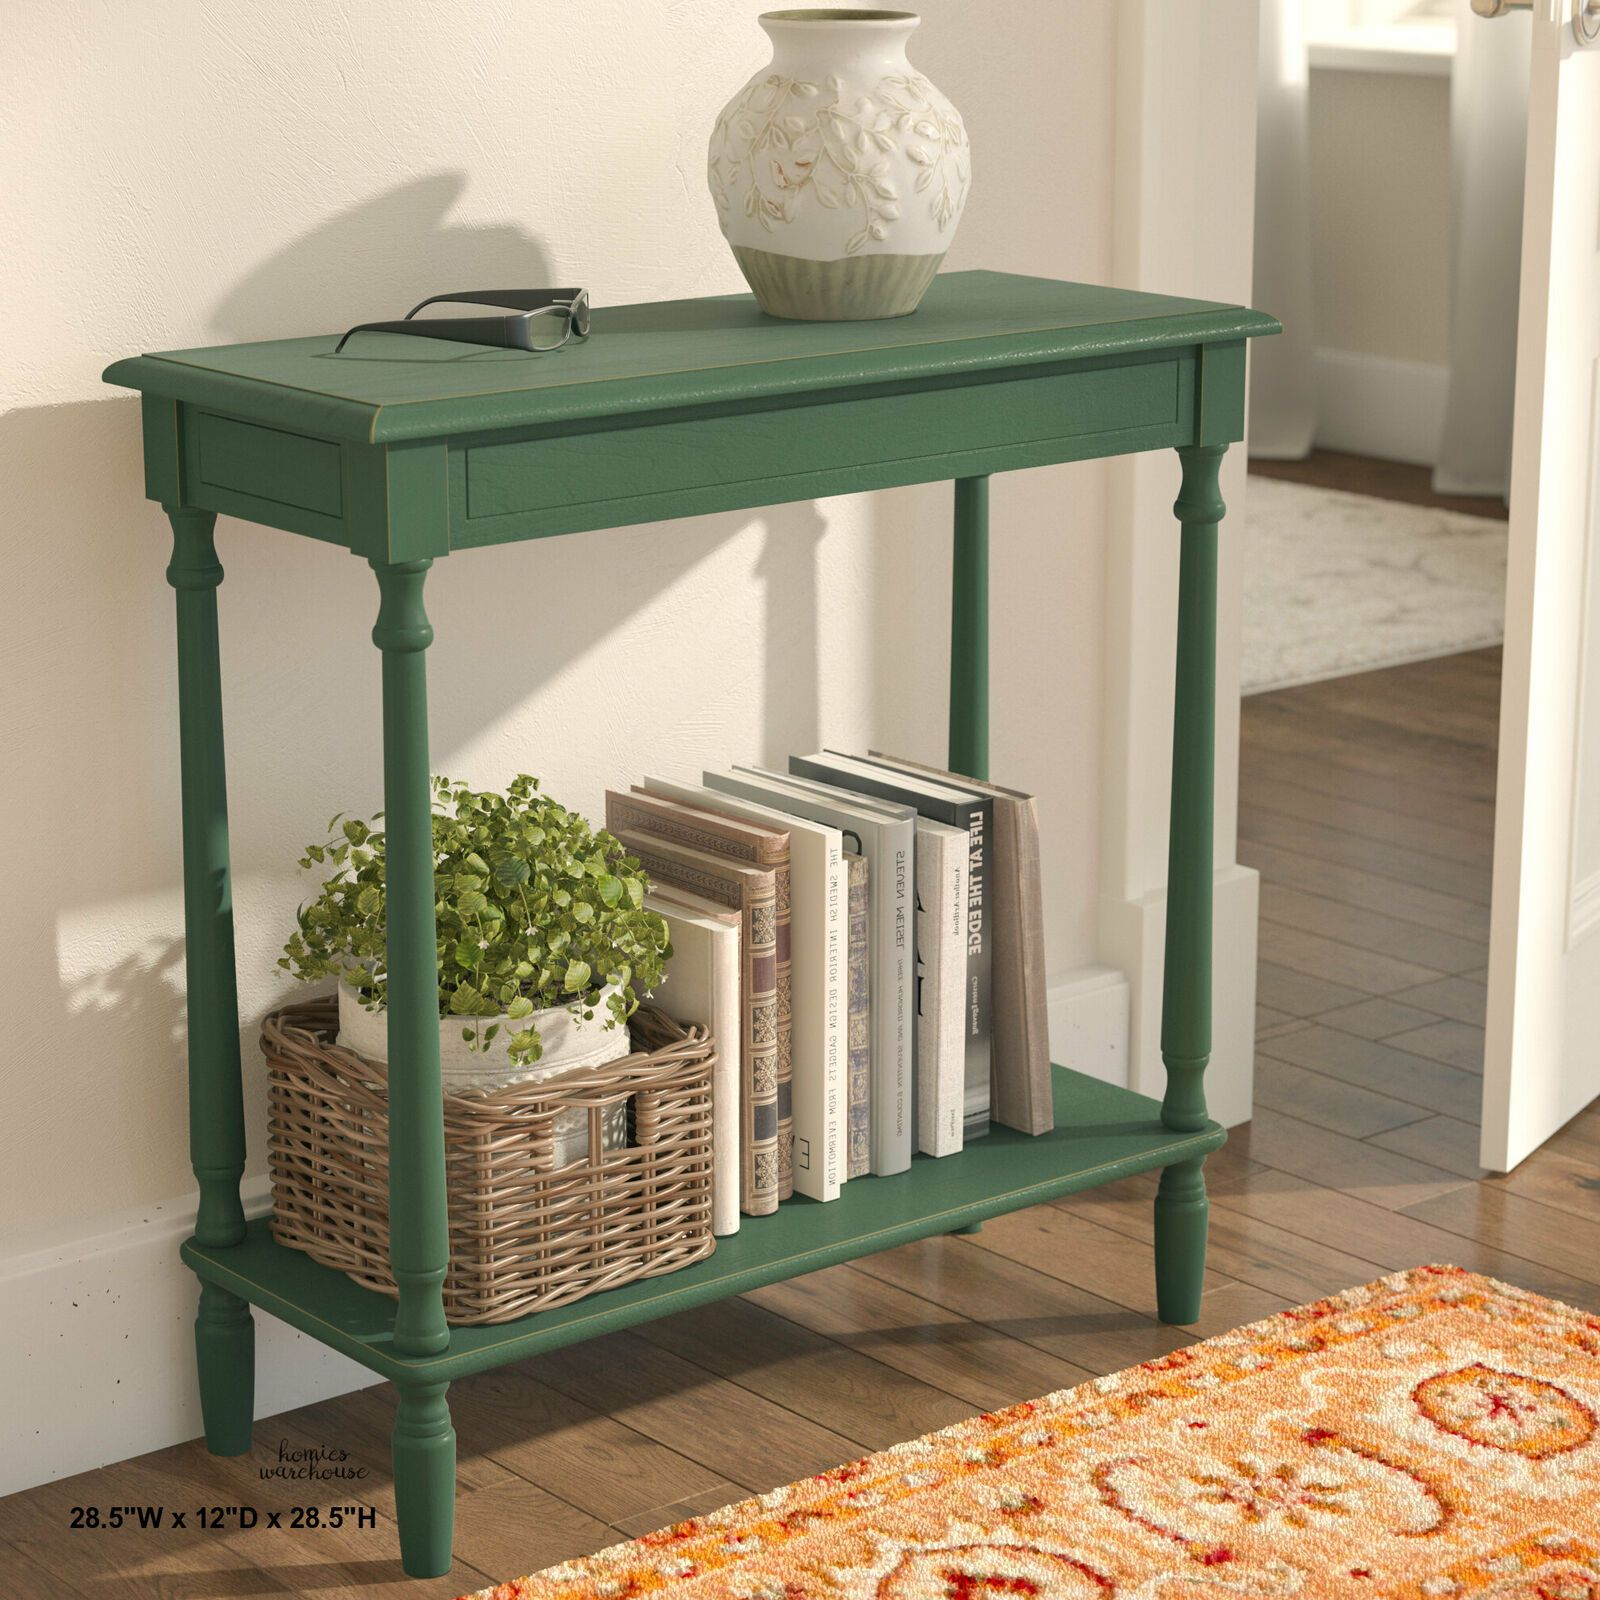 Farmhouse Small Console Table Wood Rustic Green Shelf Carved Entry Hallway Sofa Console Table Console In 2020 Wood Console Table Small Console Tables Console Table